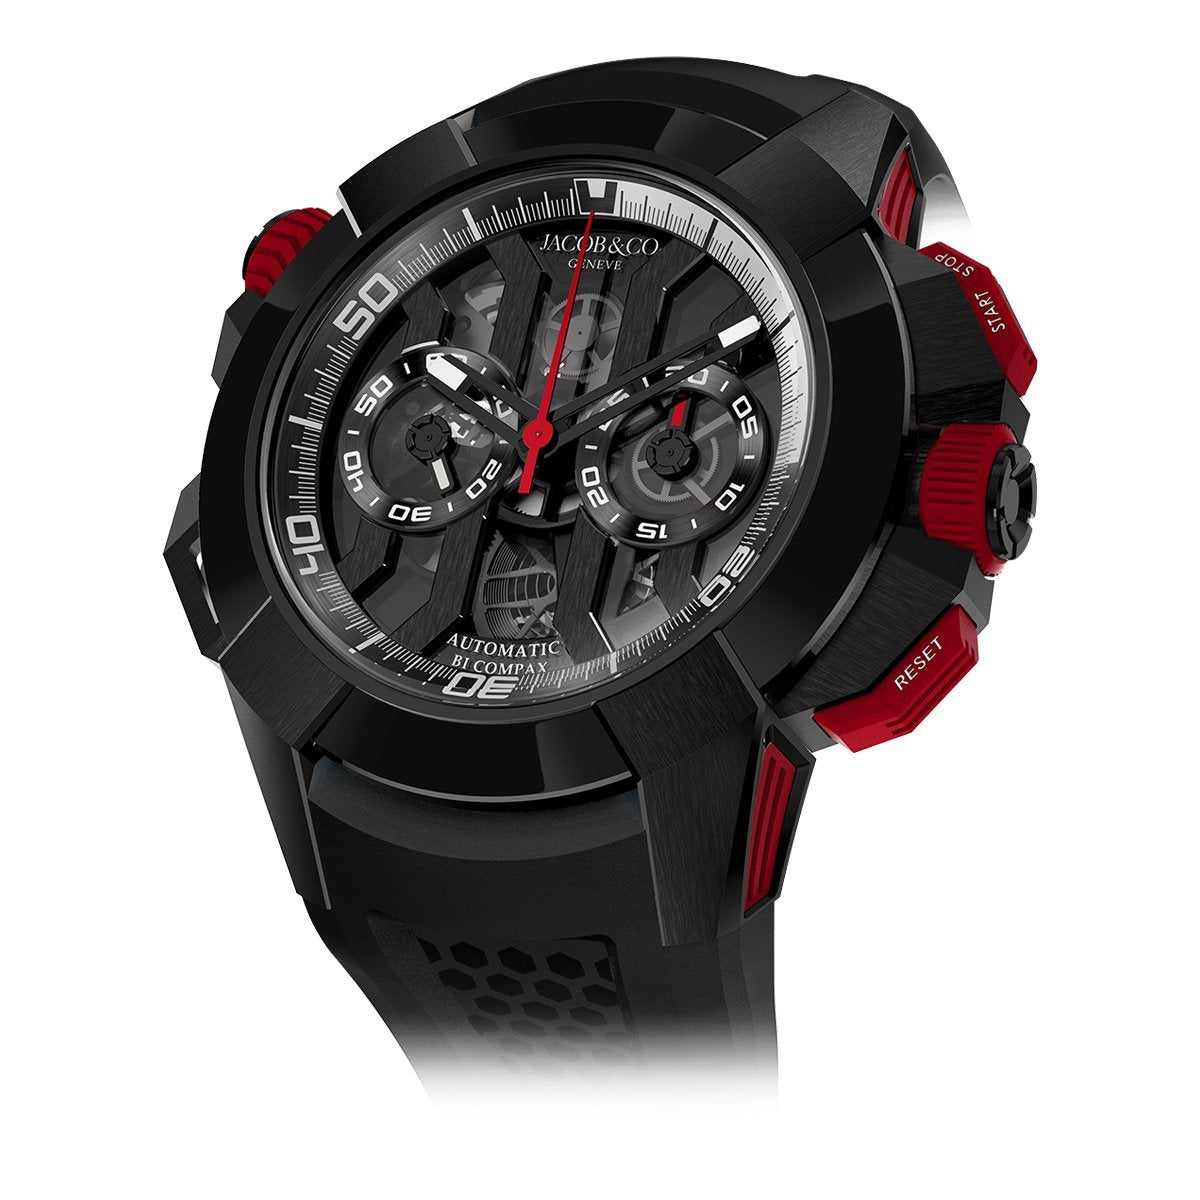 Jacob & Co. Epic X Chronograph Black DLC Red - Watches & Crystals